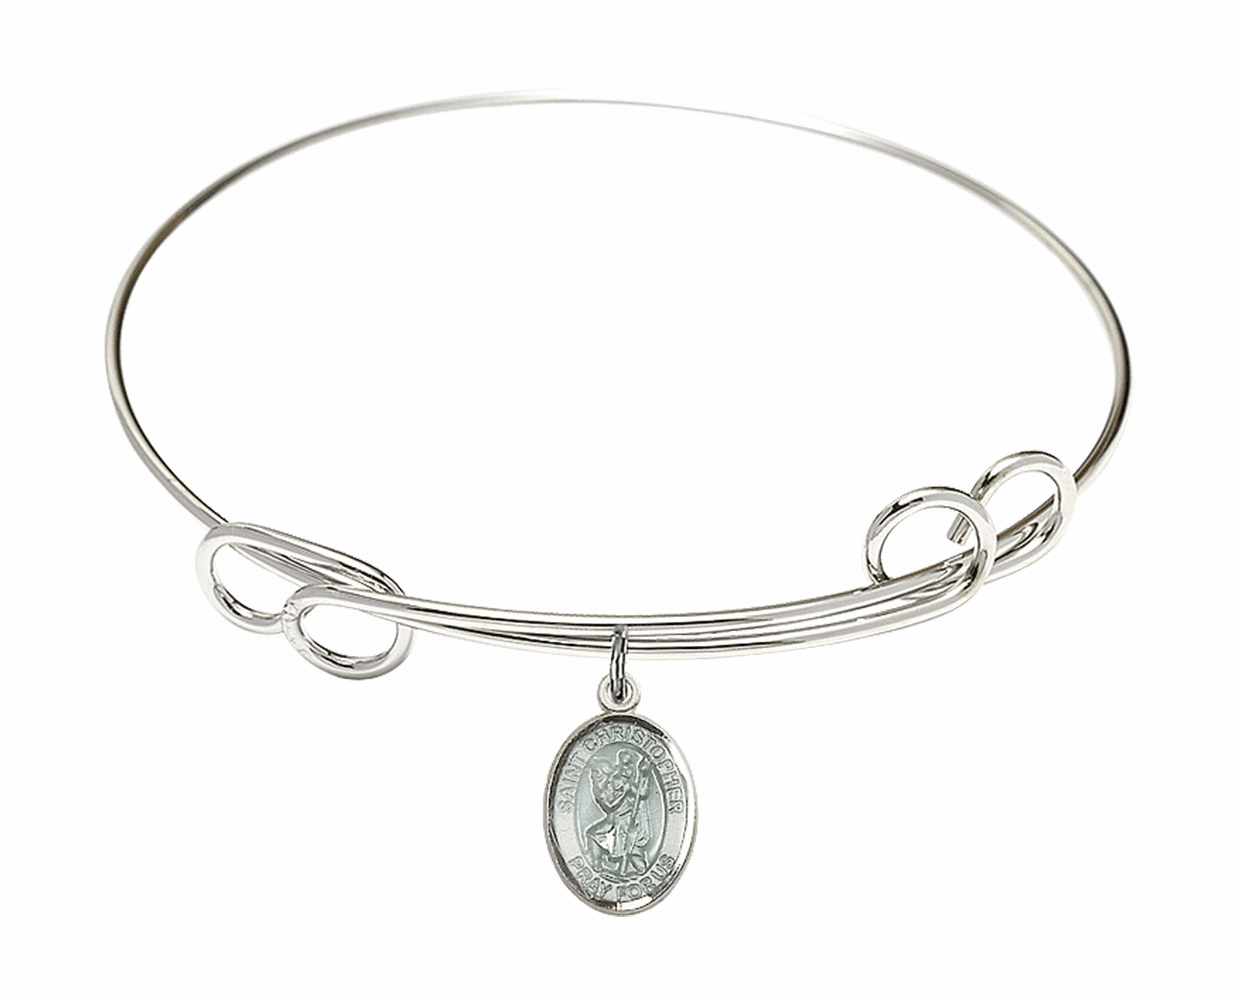 Round Loop Blue St Christopher Bangle Charm Bracelet by Bliss